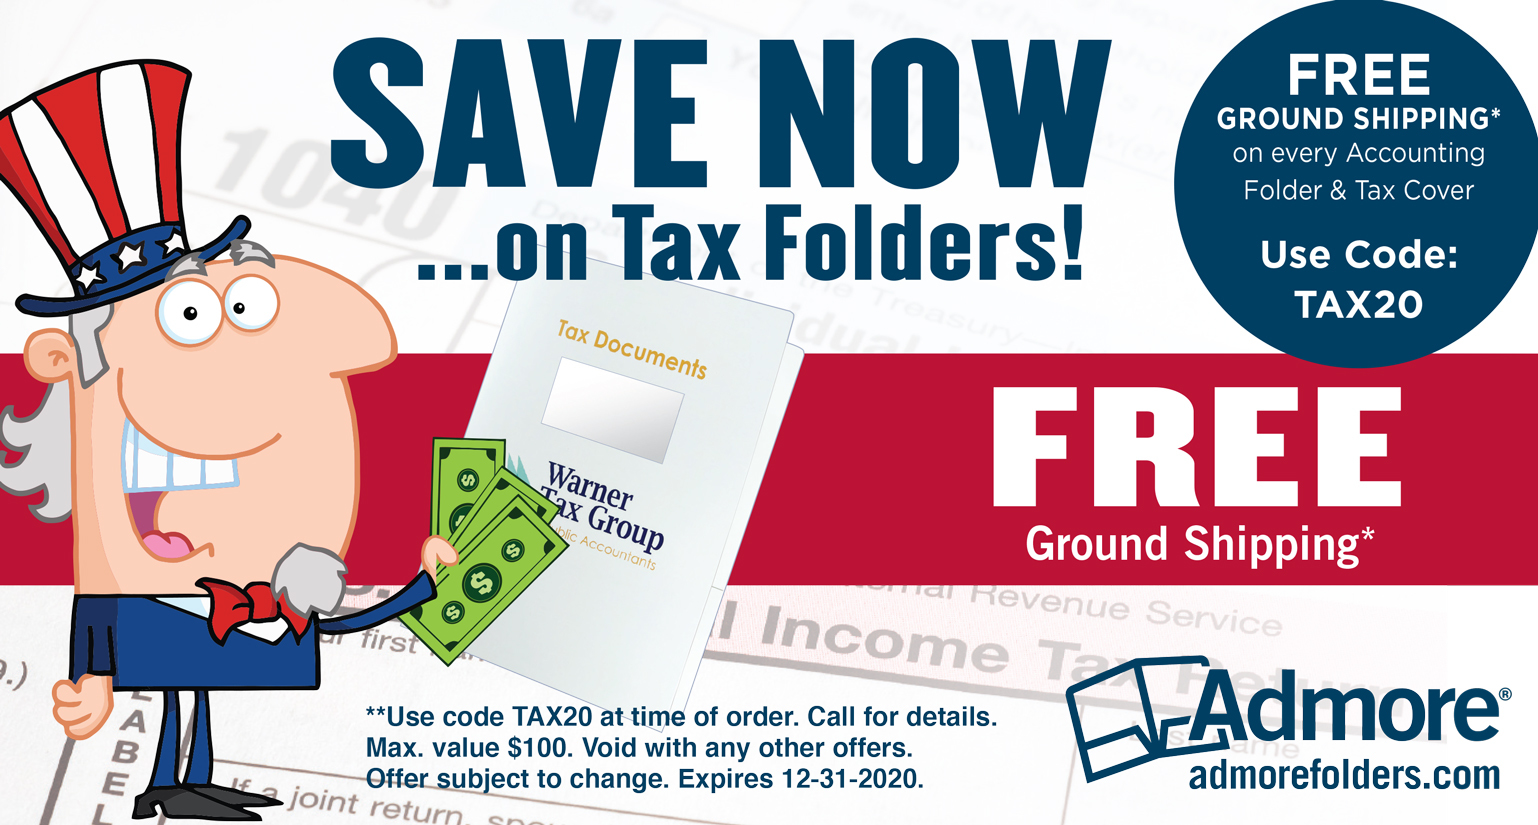 Admore - SAVE NOW on Tax Folders!